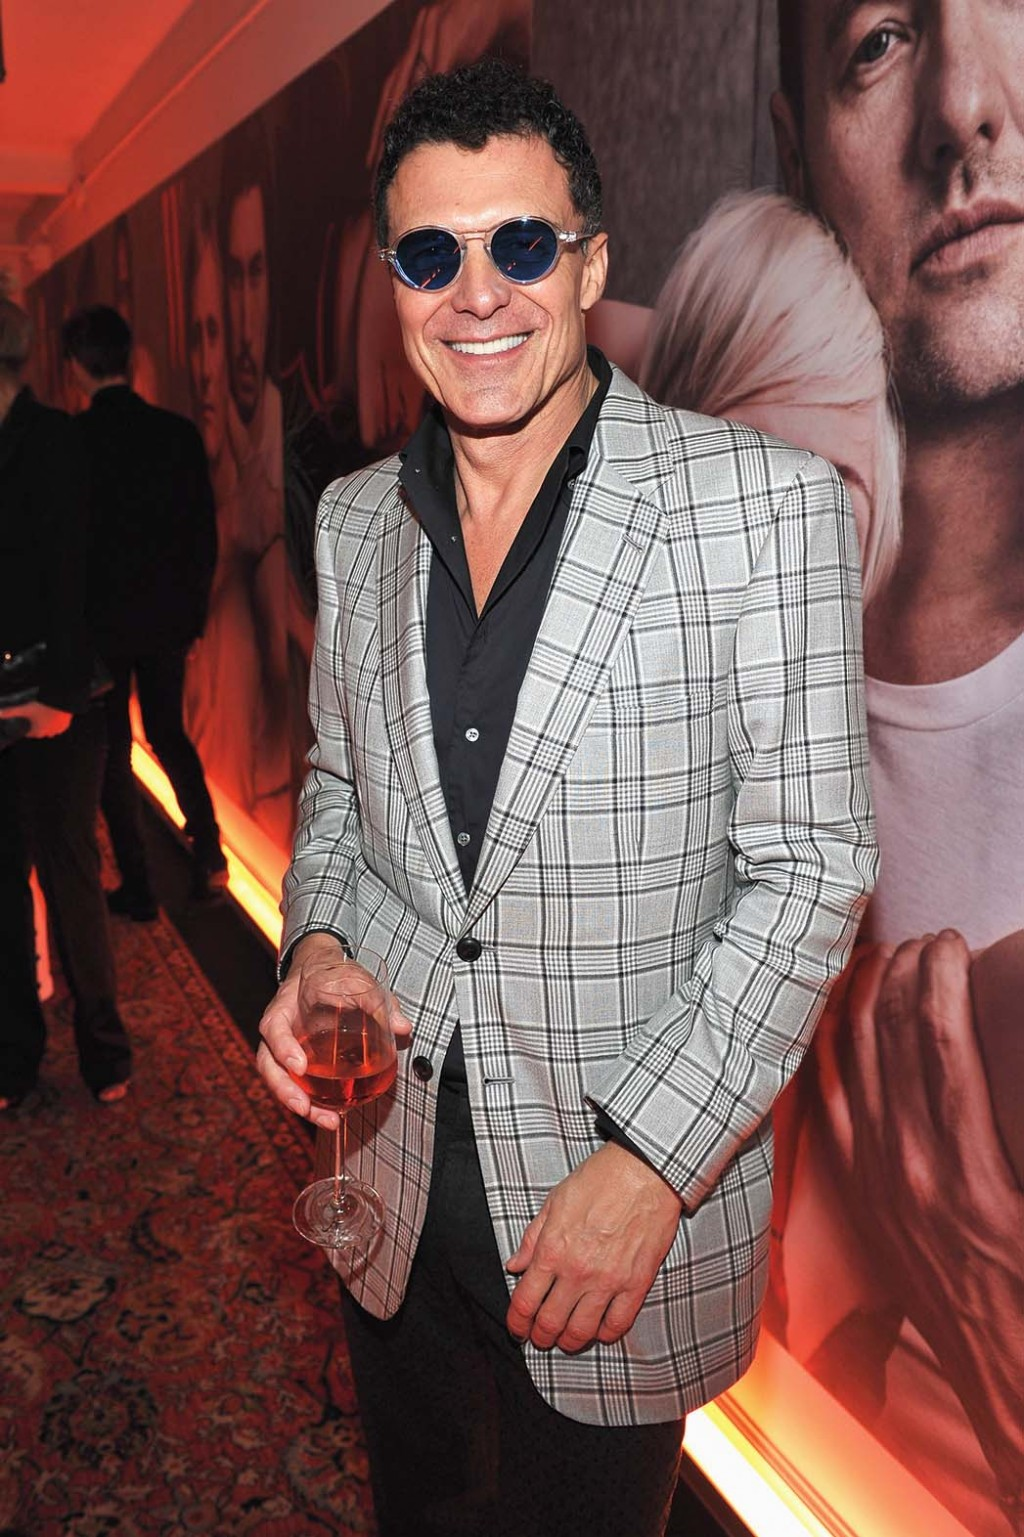 Chateau Marmont manager Andre Balazs